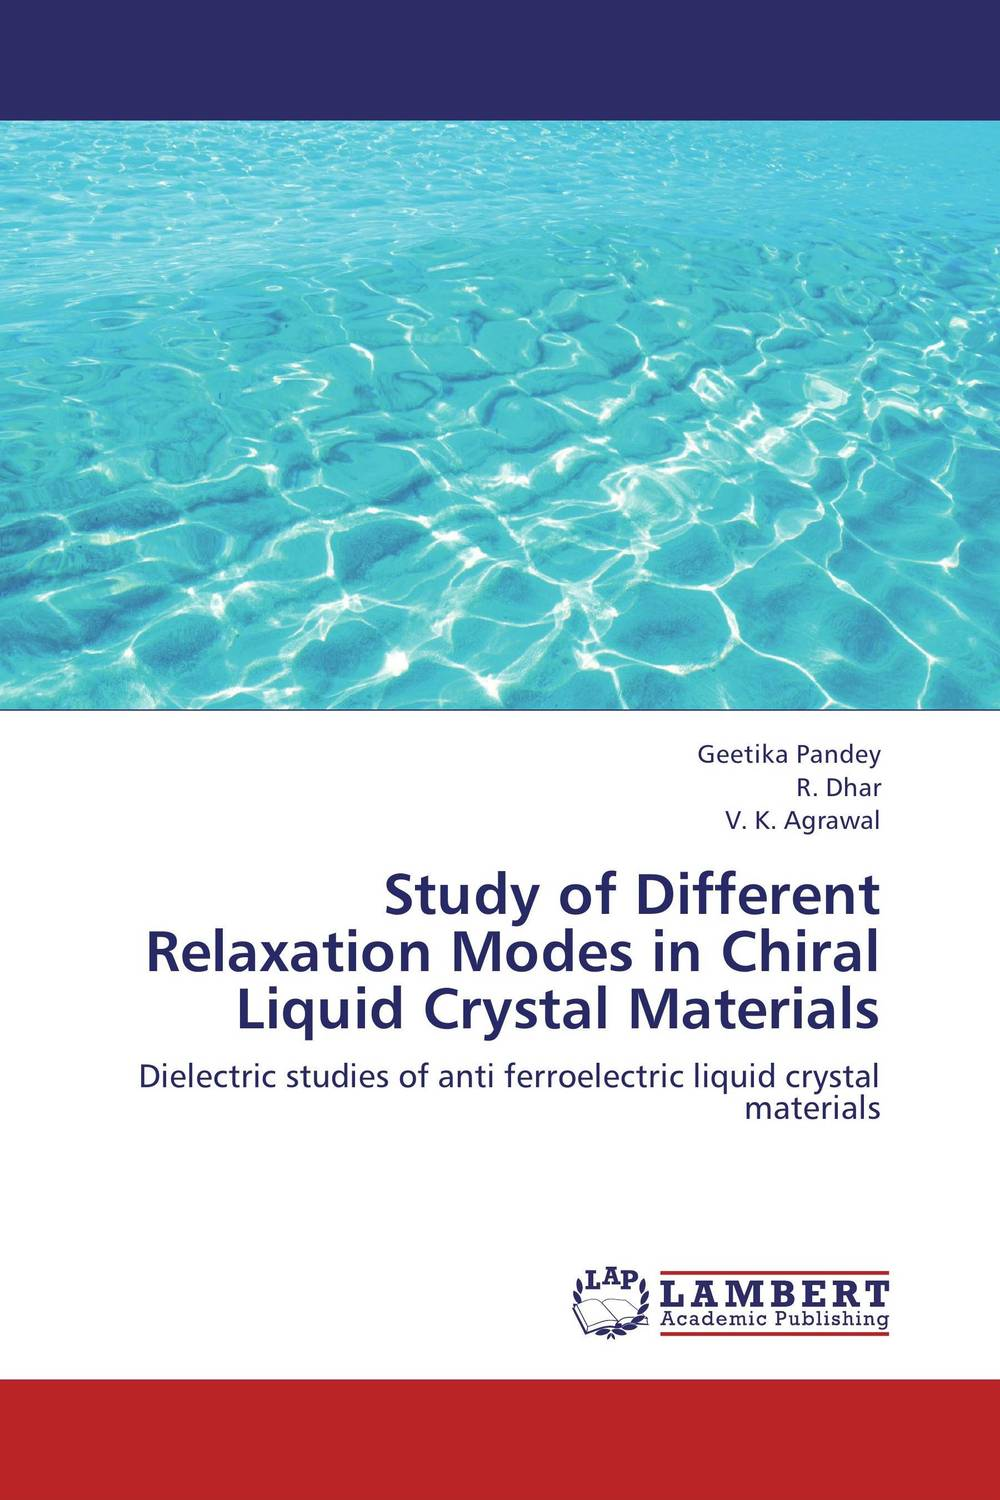 Study of Different Relaxation Modes in Chiral Liquid Crystal Materials found in brooklyn